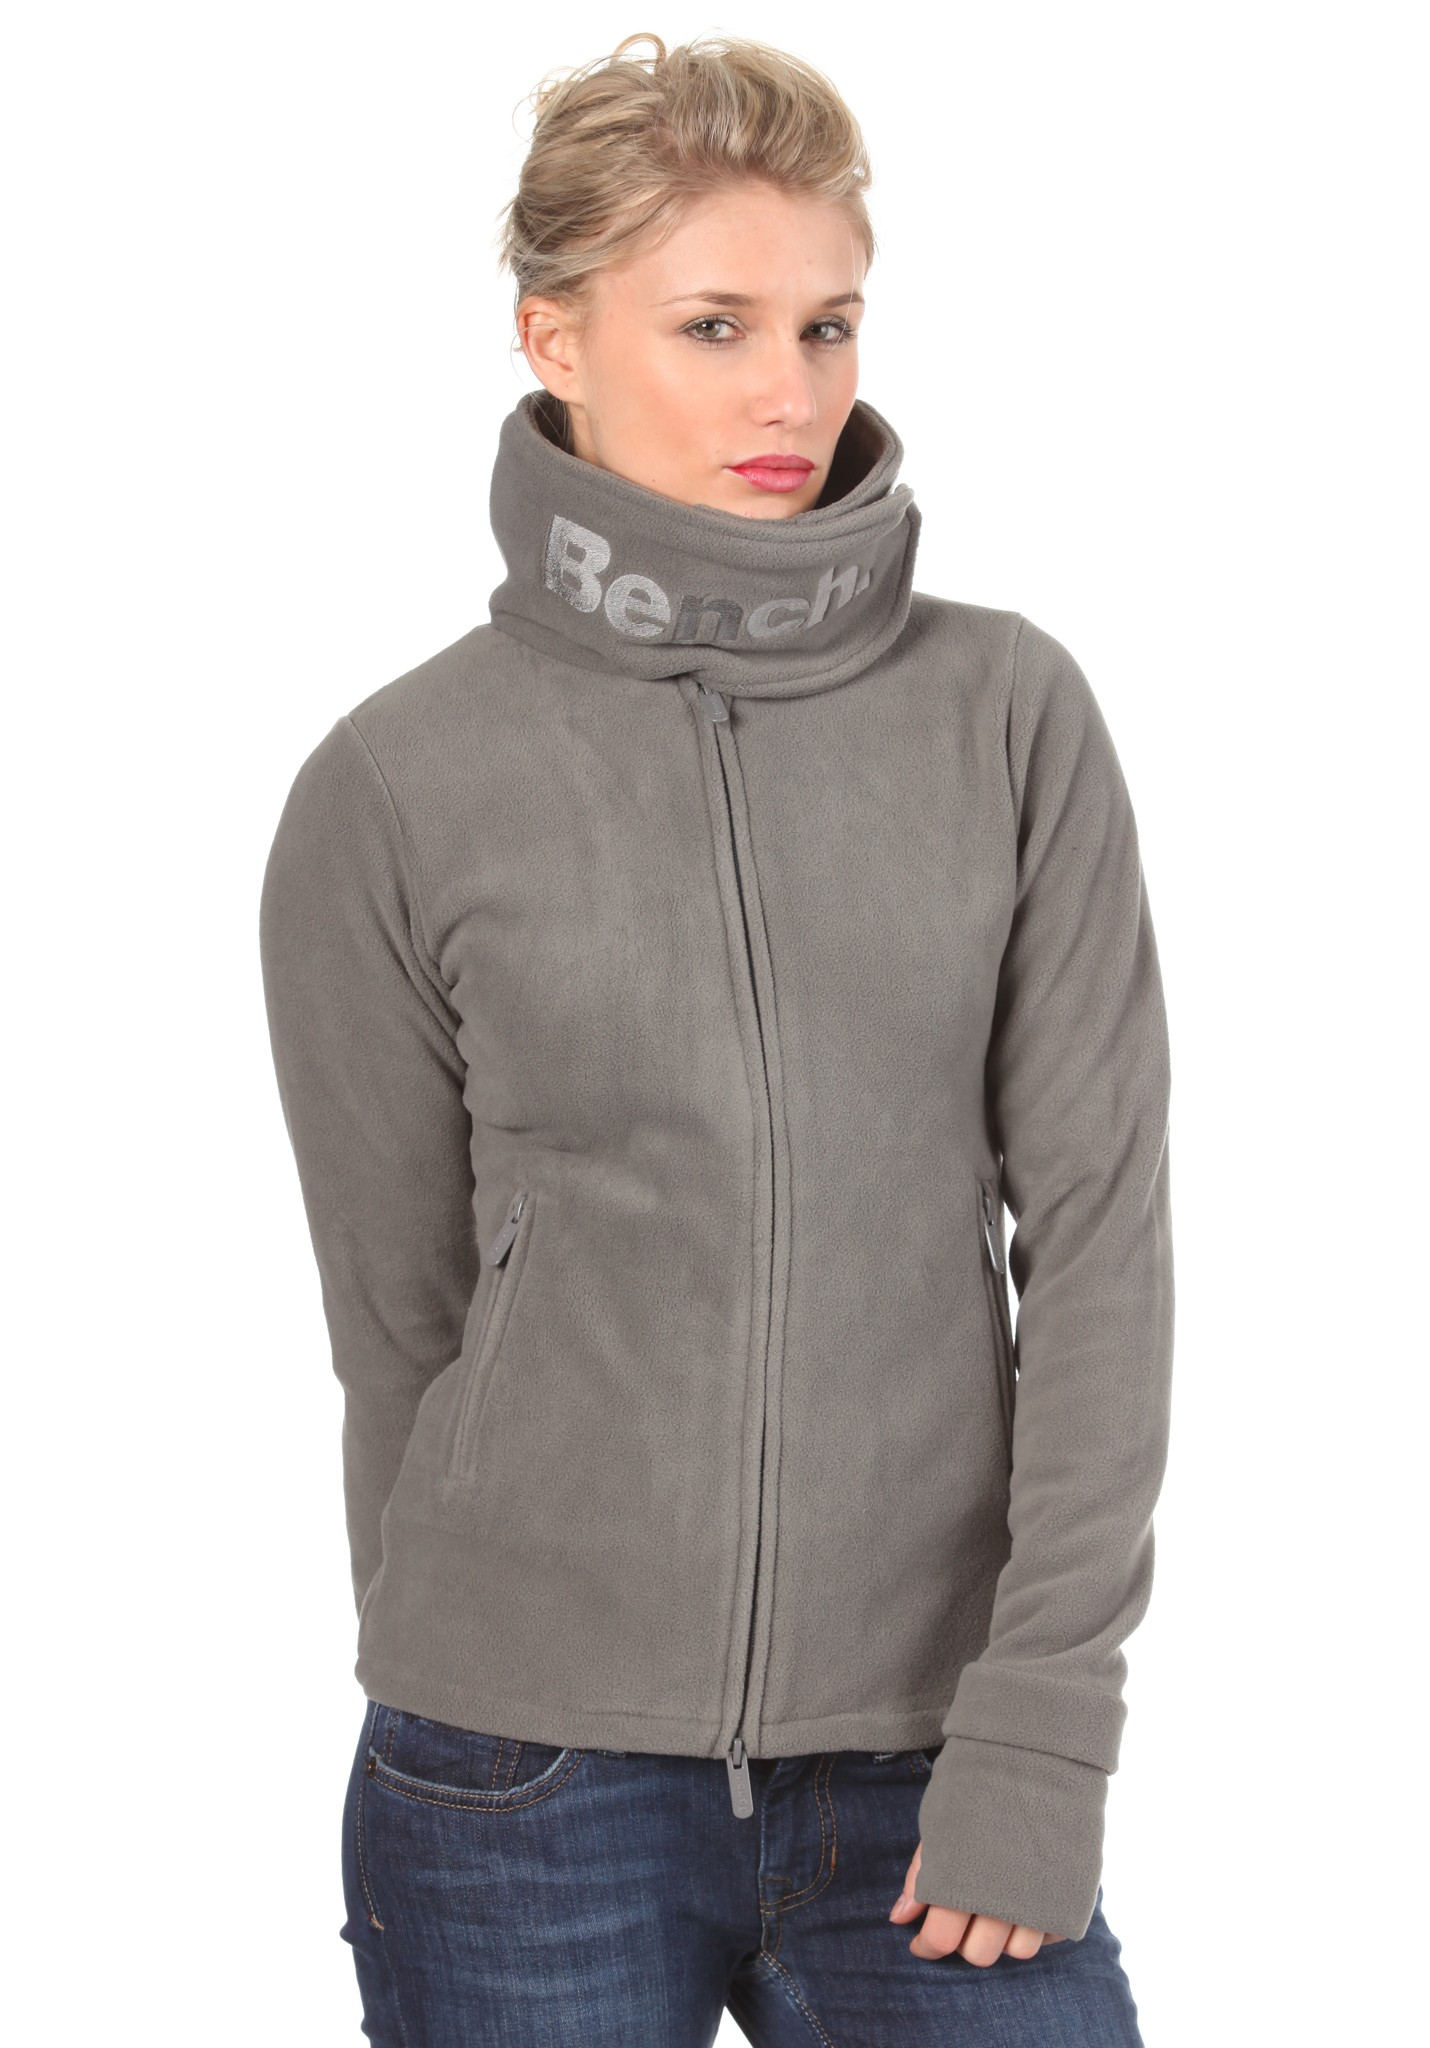 neu bench funnel neck fleece sweat damen sweatshirt ebay. Black Bedroom Furniture Sets. Home Design Ideas